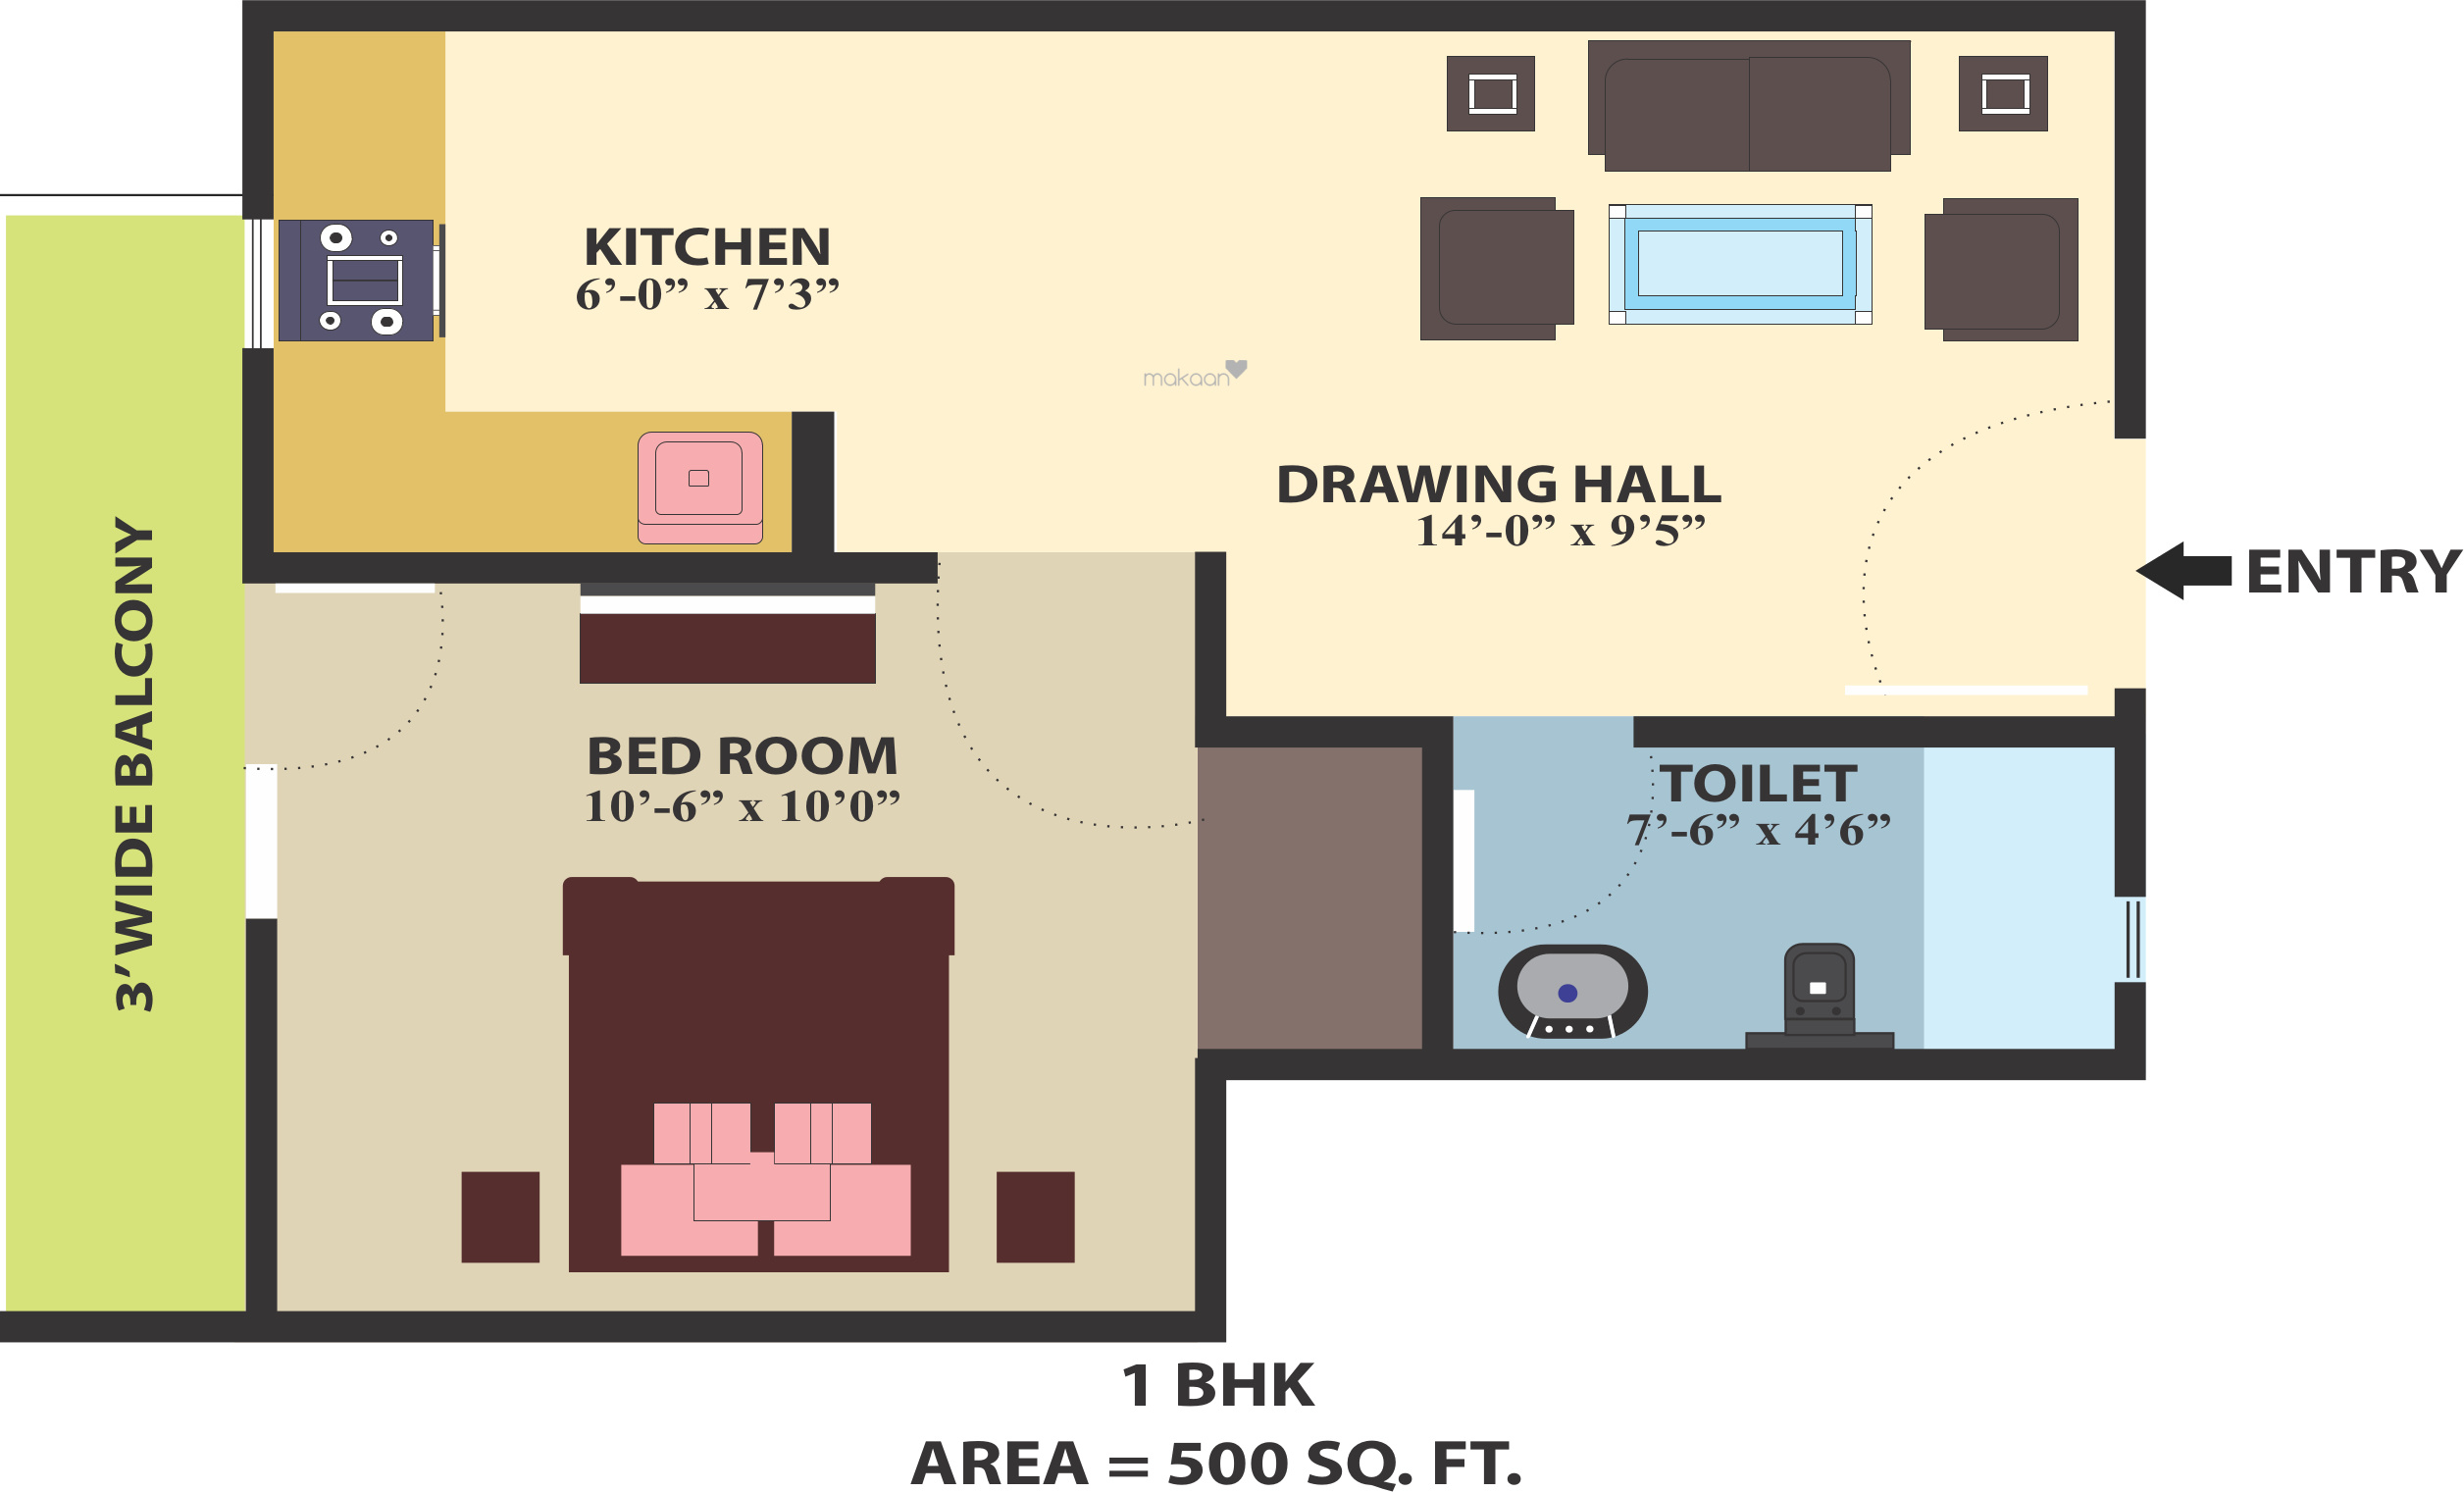 How big is 500 square feet apartment view full size How big is 500 square feet